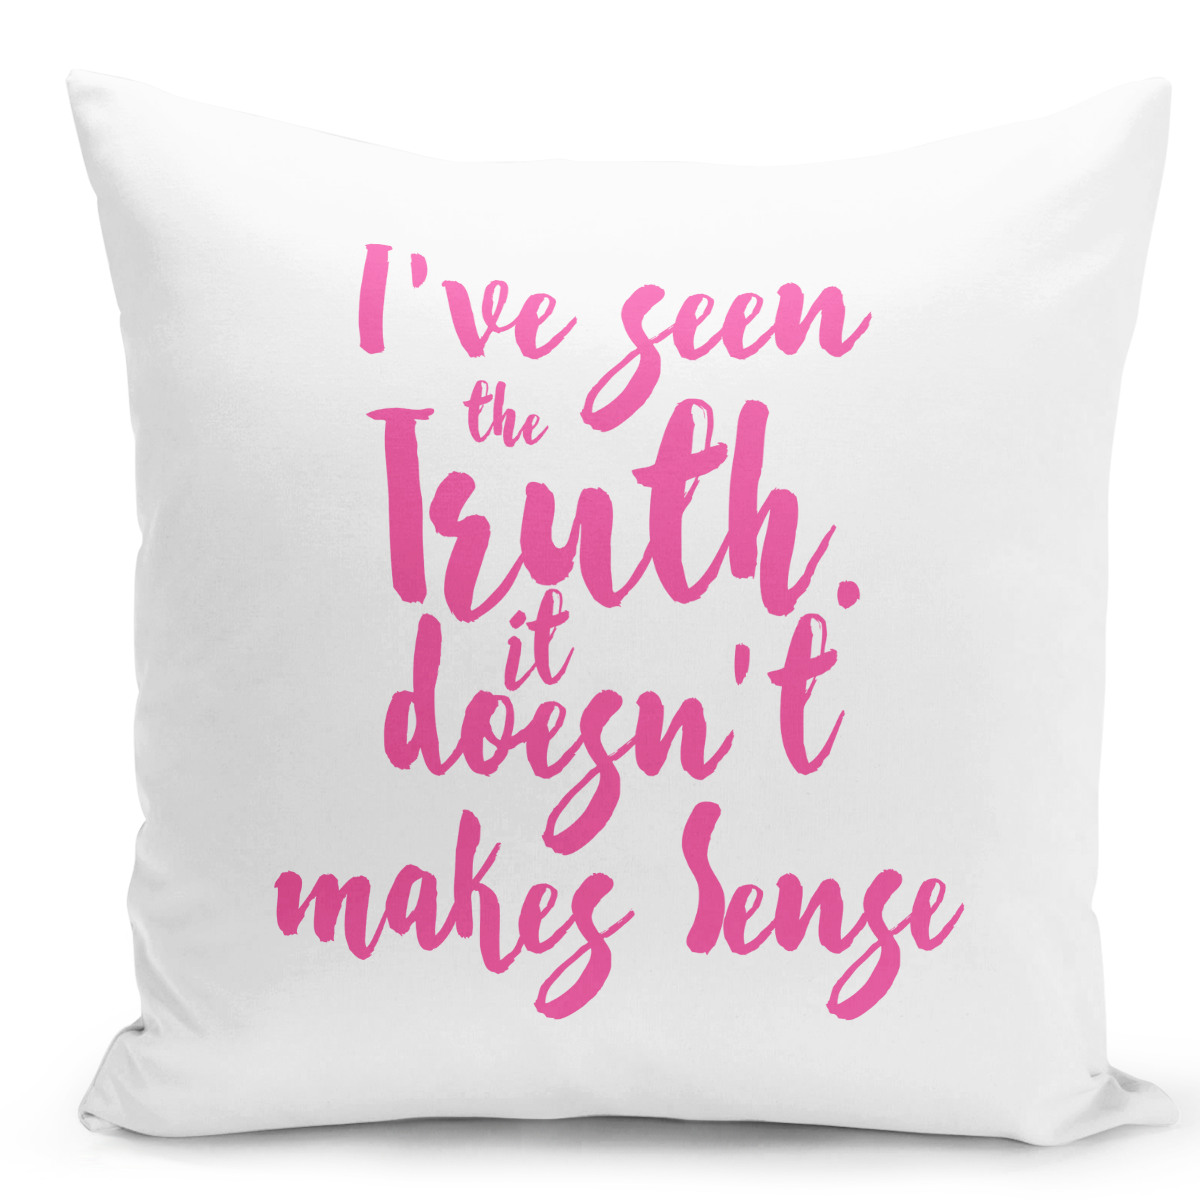 16x16-inch-Throw-Pillow-for-Home-Decor-with-Stuffing-i-Have-Seen-The-Truth-Doesnt-Makes-Sense-Pillow-With-Words-Pink-